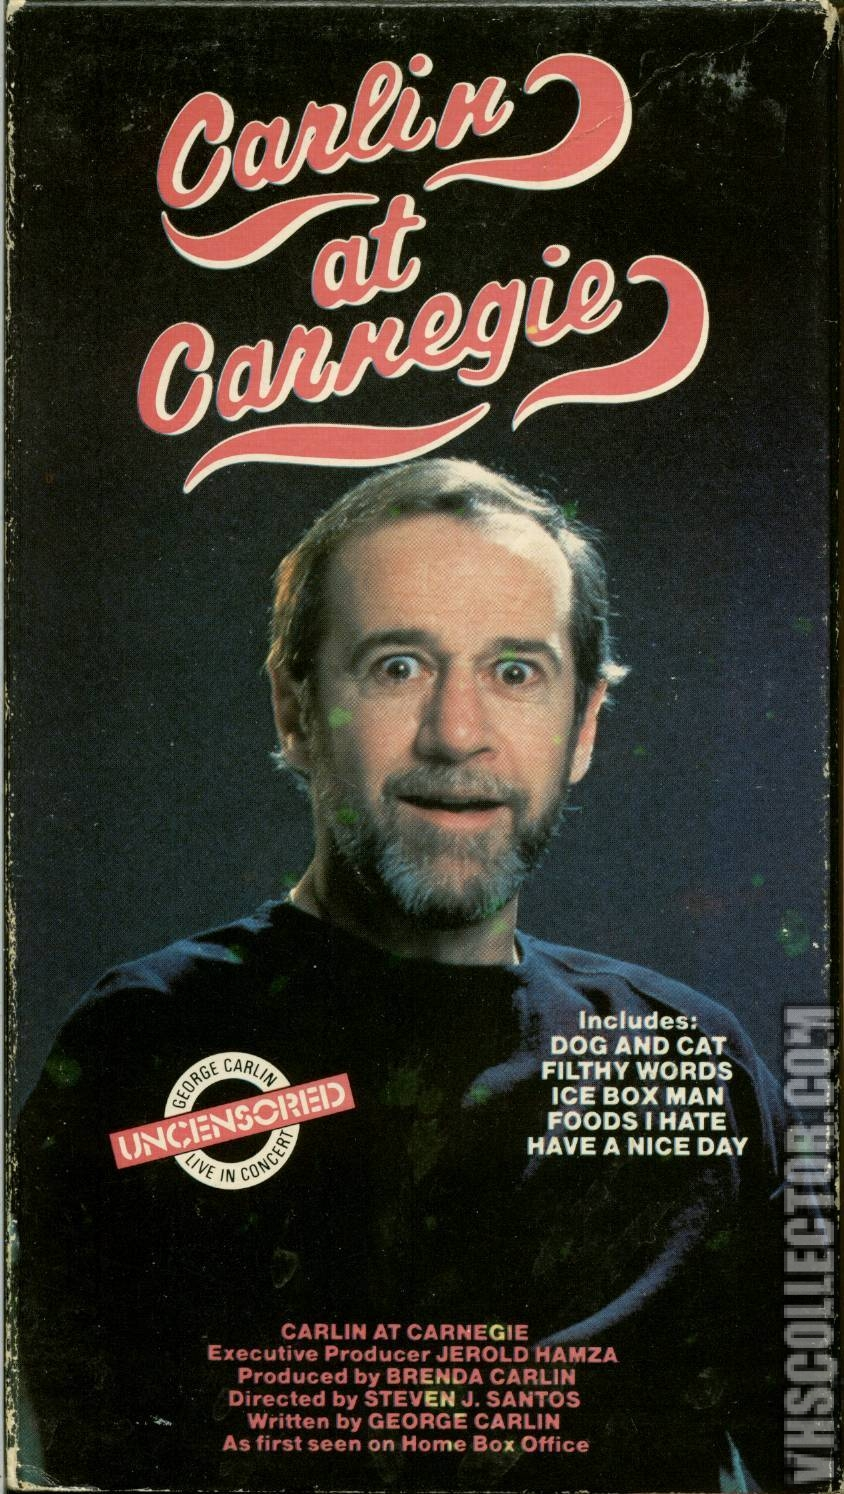 http://www.vhscollector.com/movie/carlin-carnegie